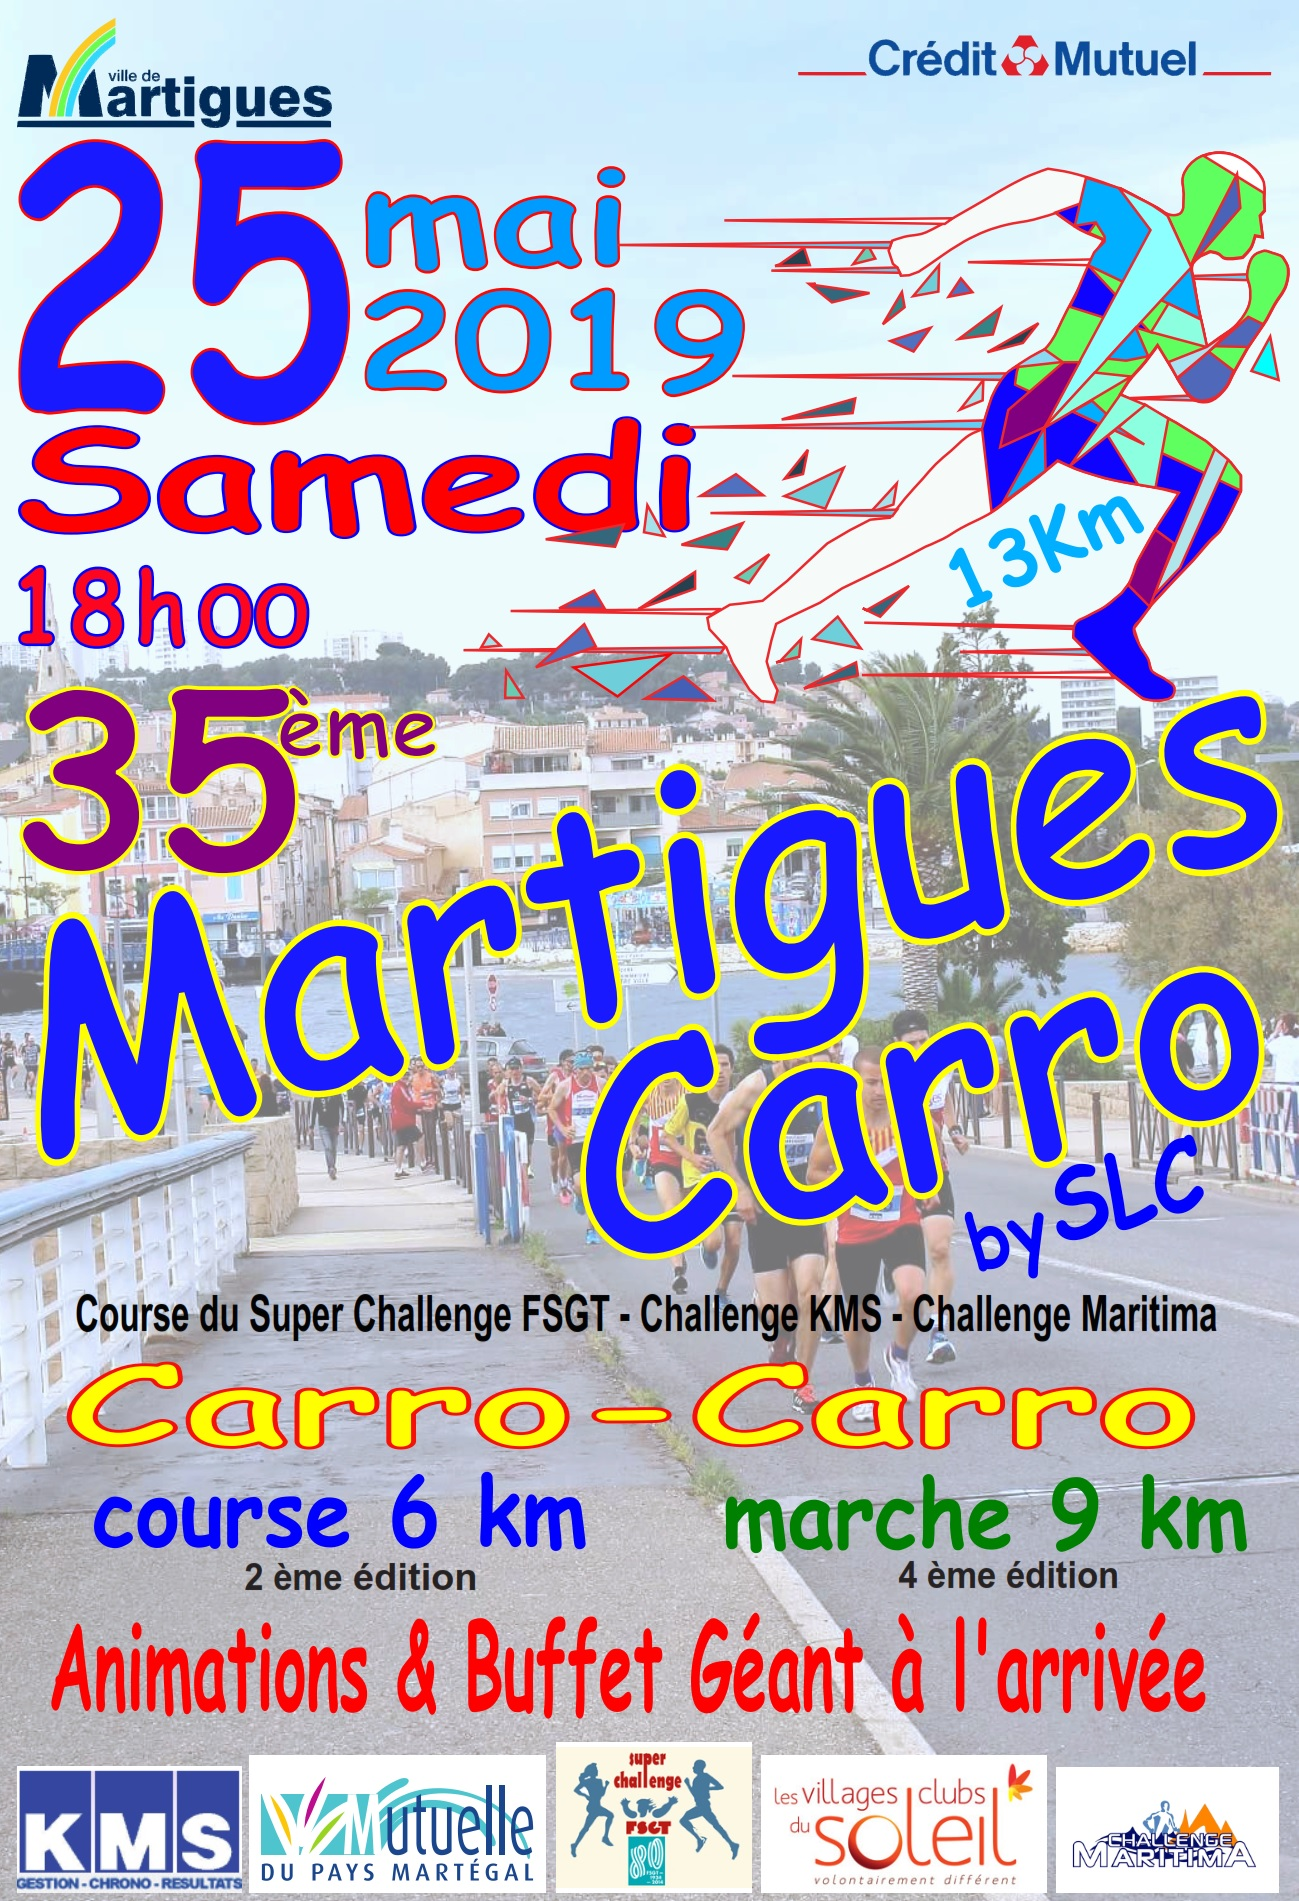 Martigues - Carro : Course 6 km